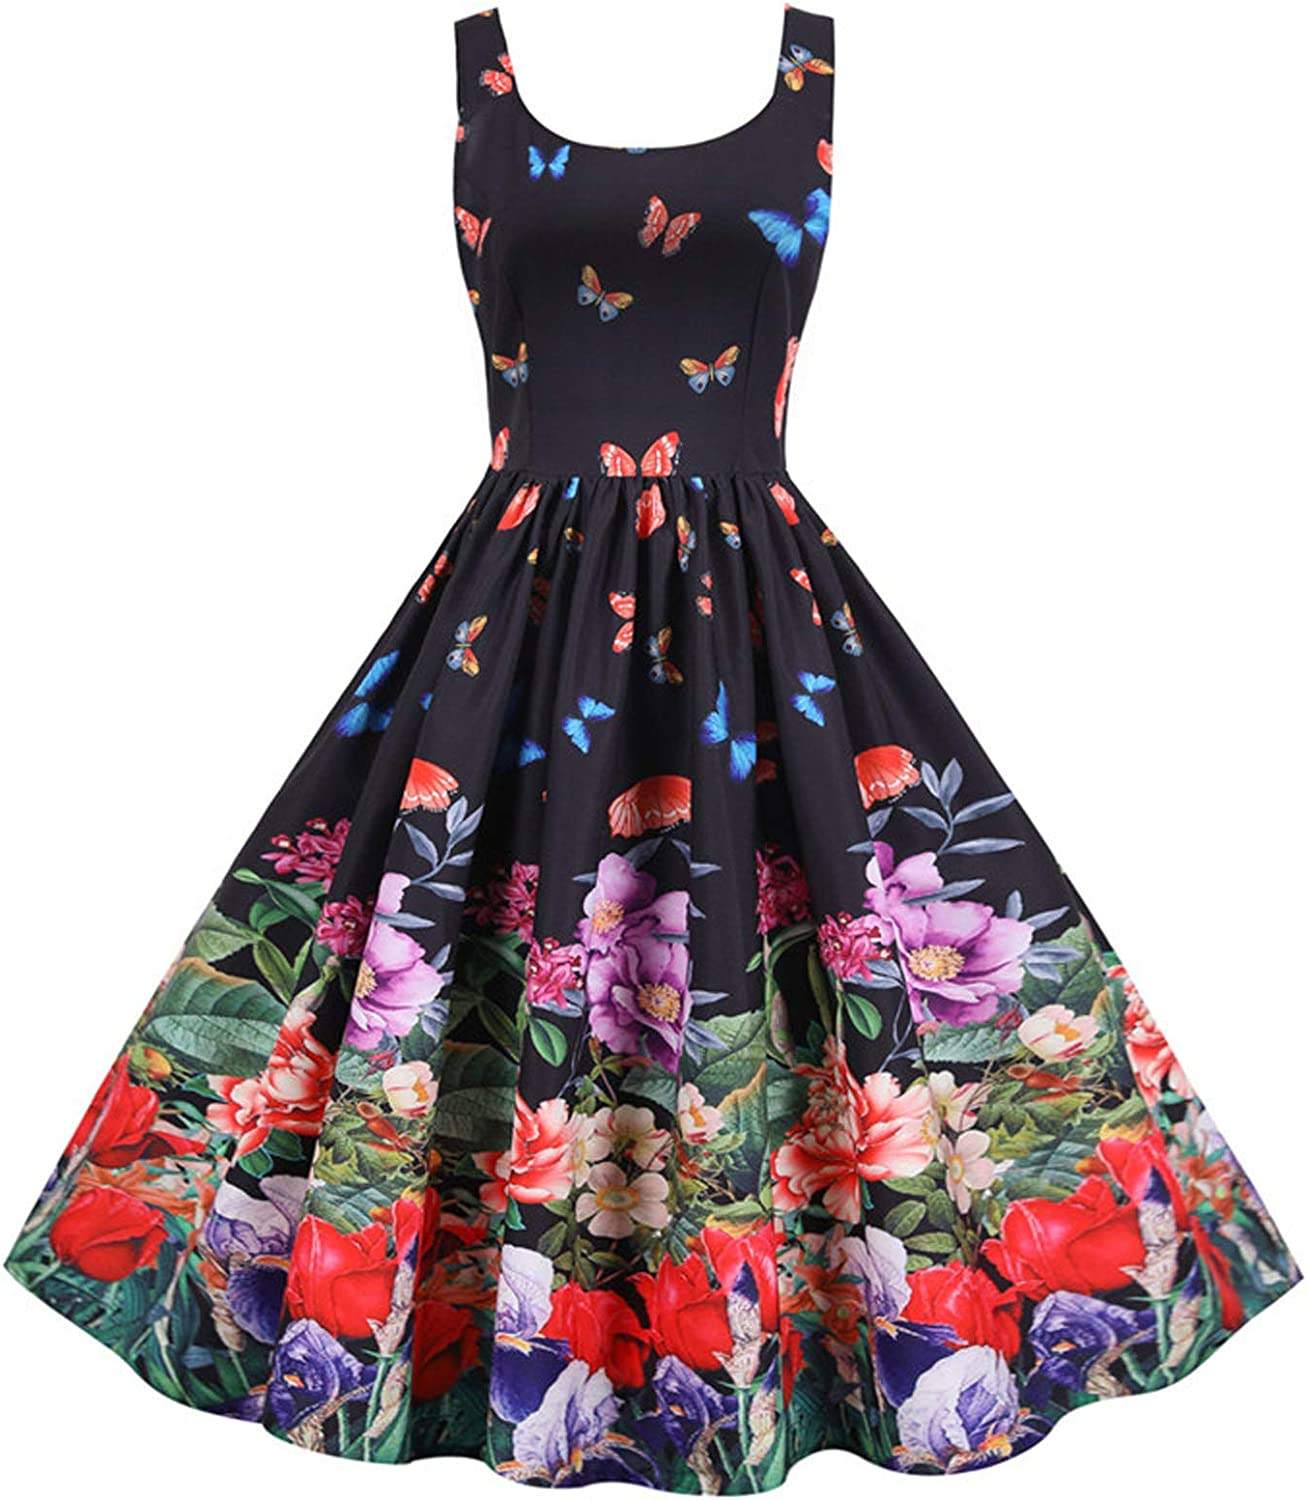 Fankle Vintage Tea Dress 1950's Floral Spring Garden Retro Swing Prom Party Cocktail Party Dress for Women